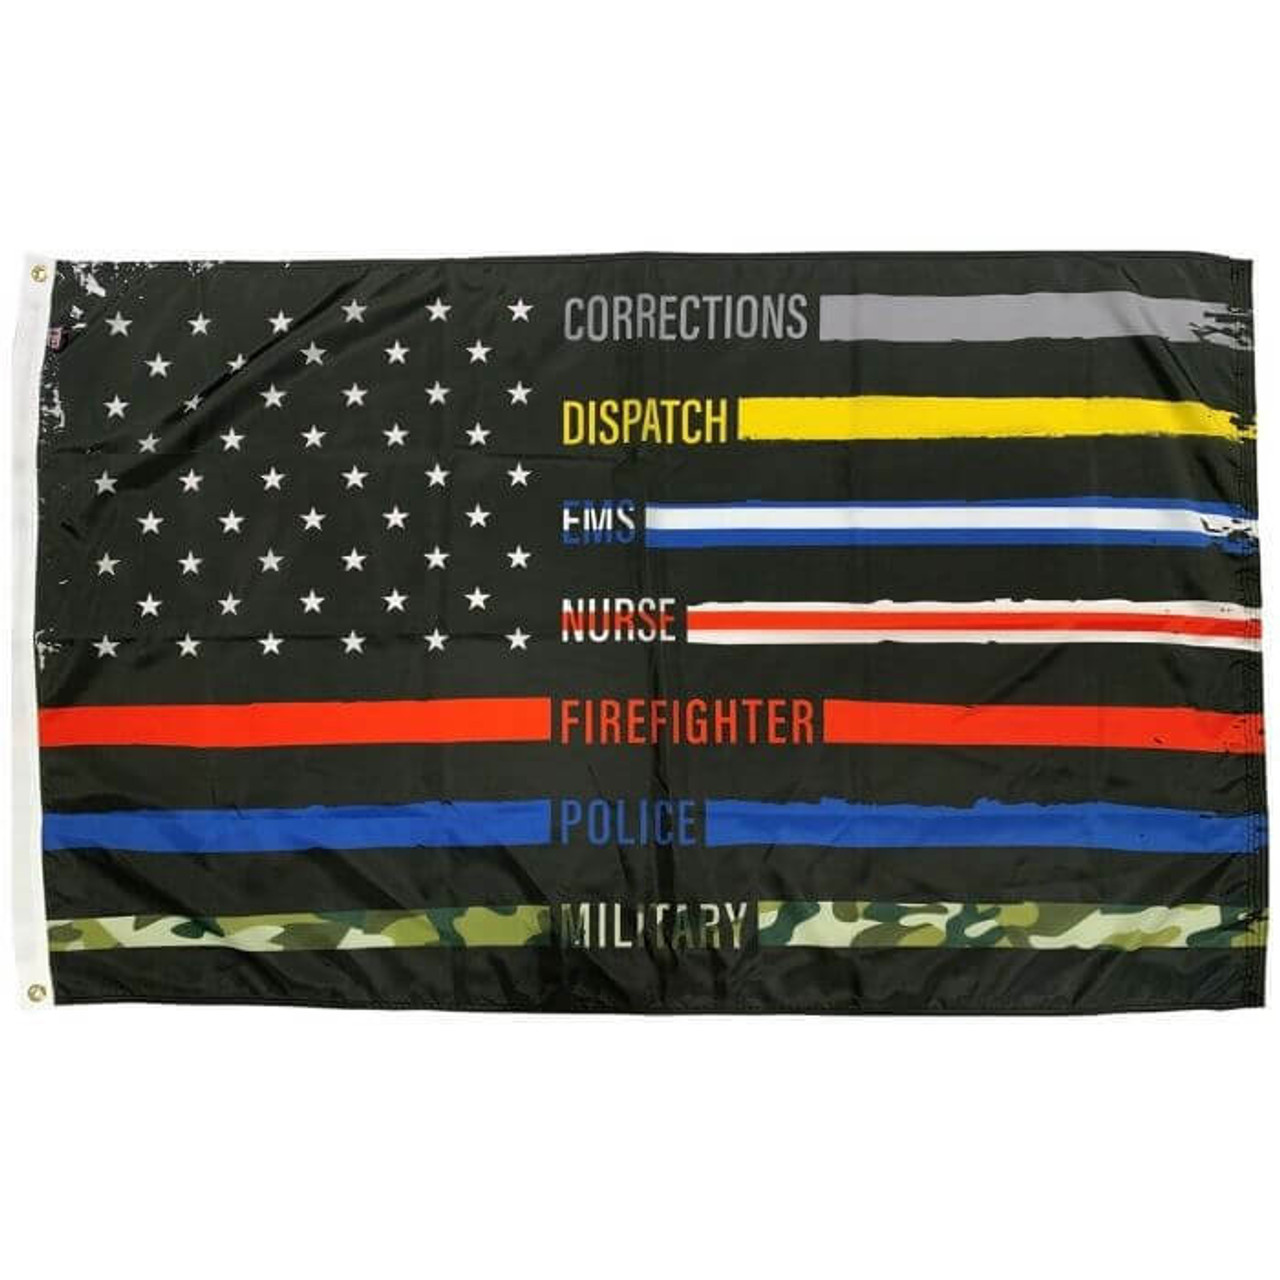 First Responder American Flag with black background and black & colorful alternating stripes. First responder stripes include: Gray stipe for corrections, yellow stripe for dispatch, blue and white stripe for EMS, white and red stripe for nurse, red stripe for firefighter, blue stripe for police, and camouflage stripe for military.